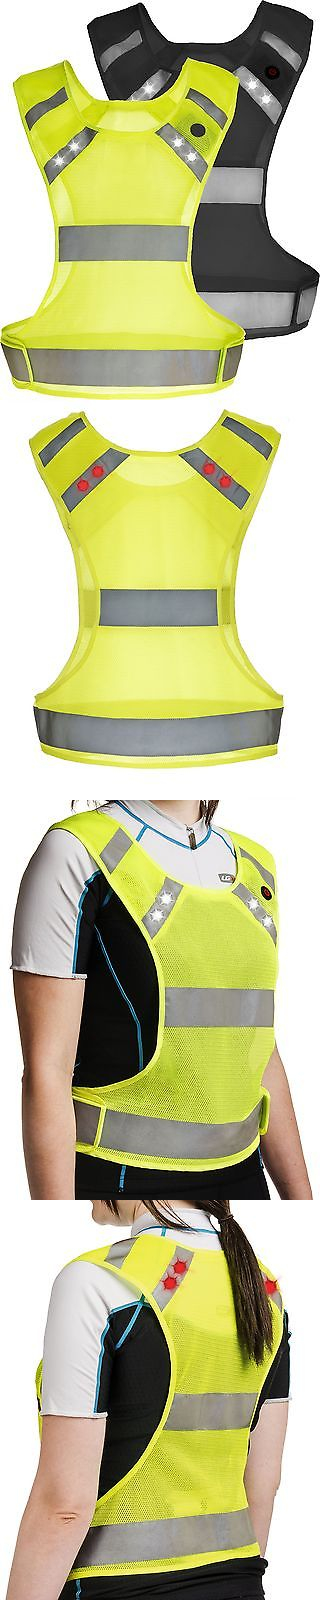 Safety and Reflective Gear 158951 Reflective Running Vest